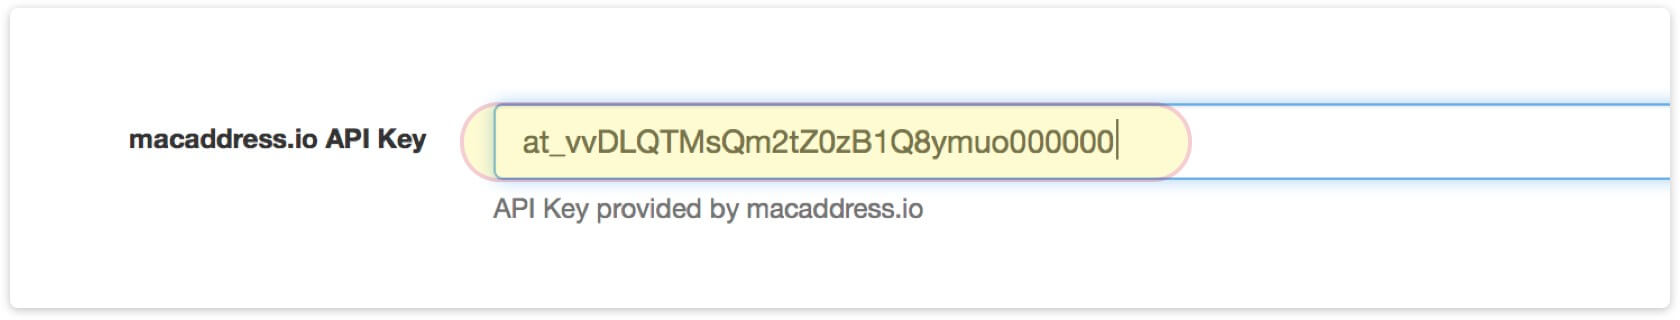 Provide your API key by setting the macaddress.io API KEY value and click 'Save'